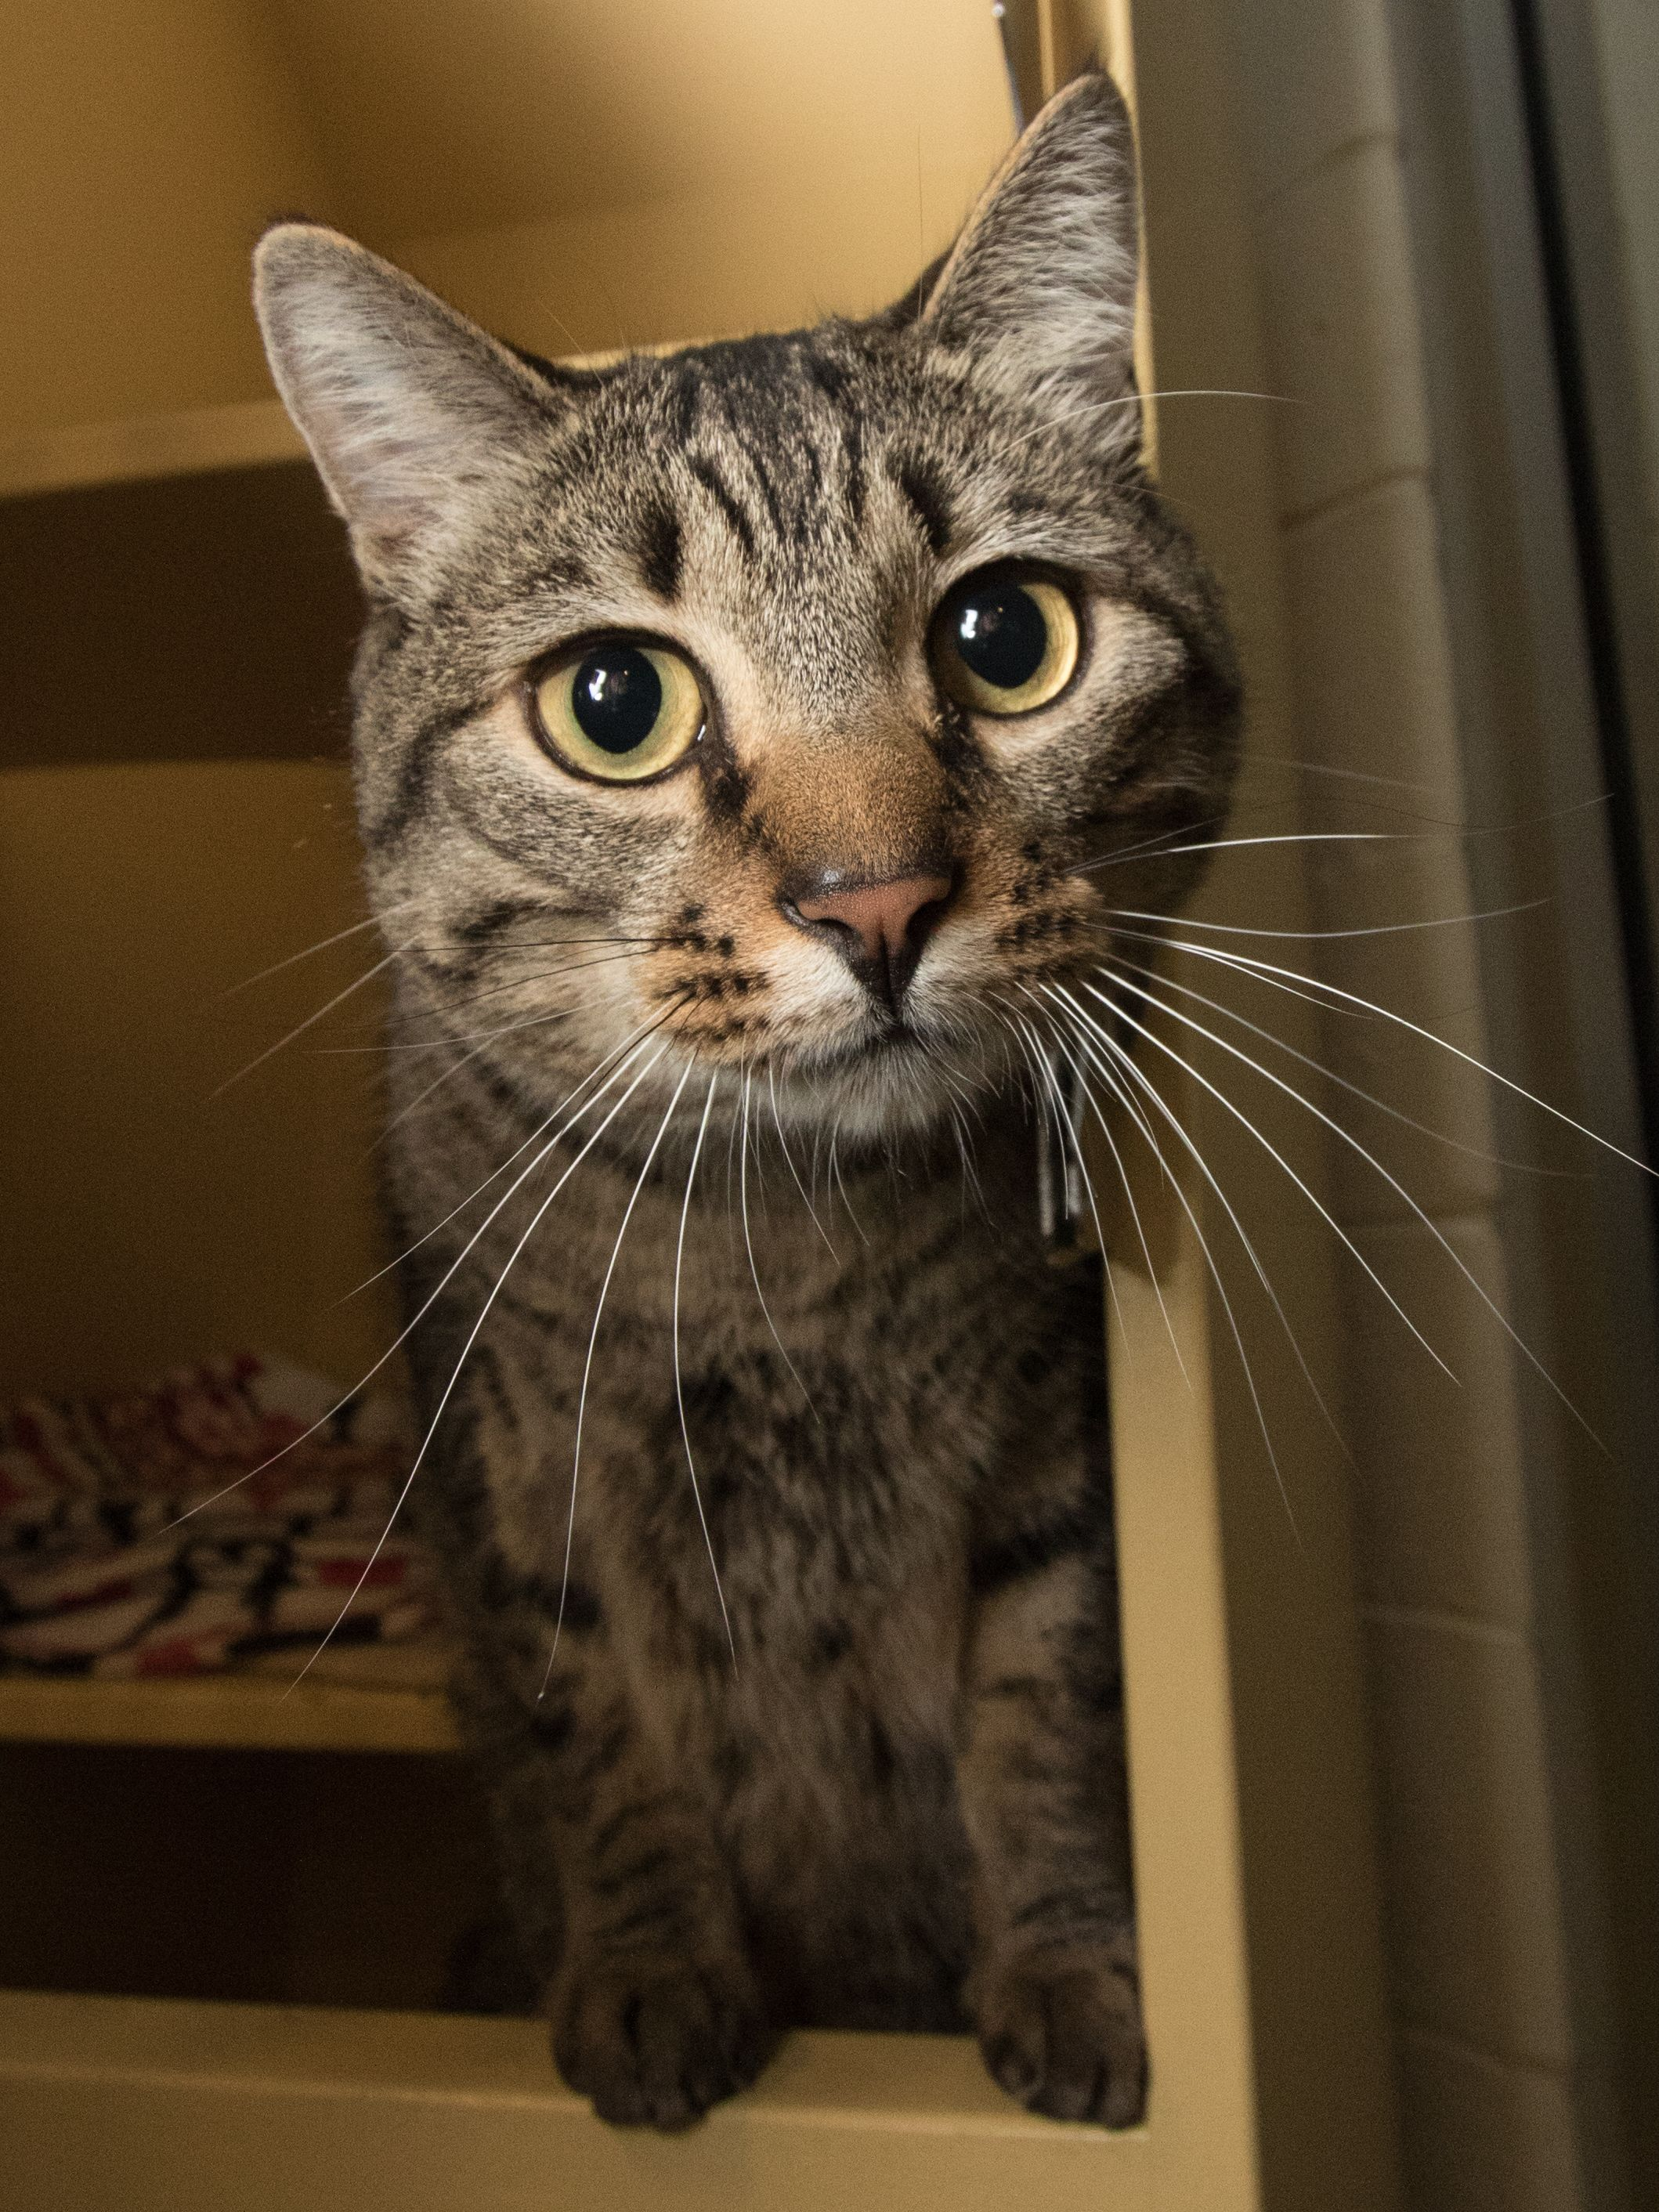 MILO is an adoptable domestic short hair searching for a